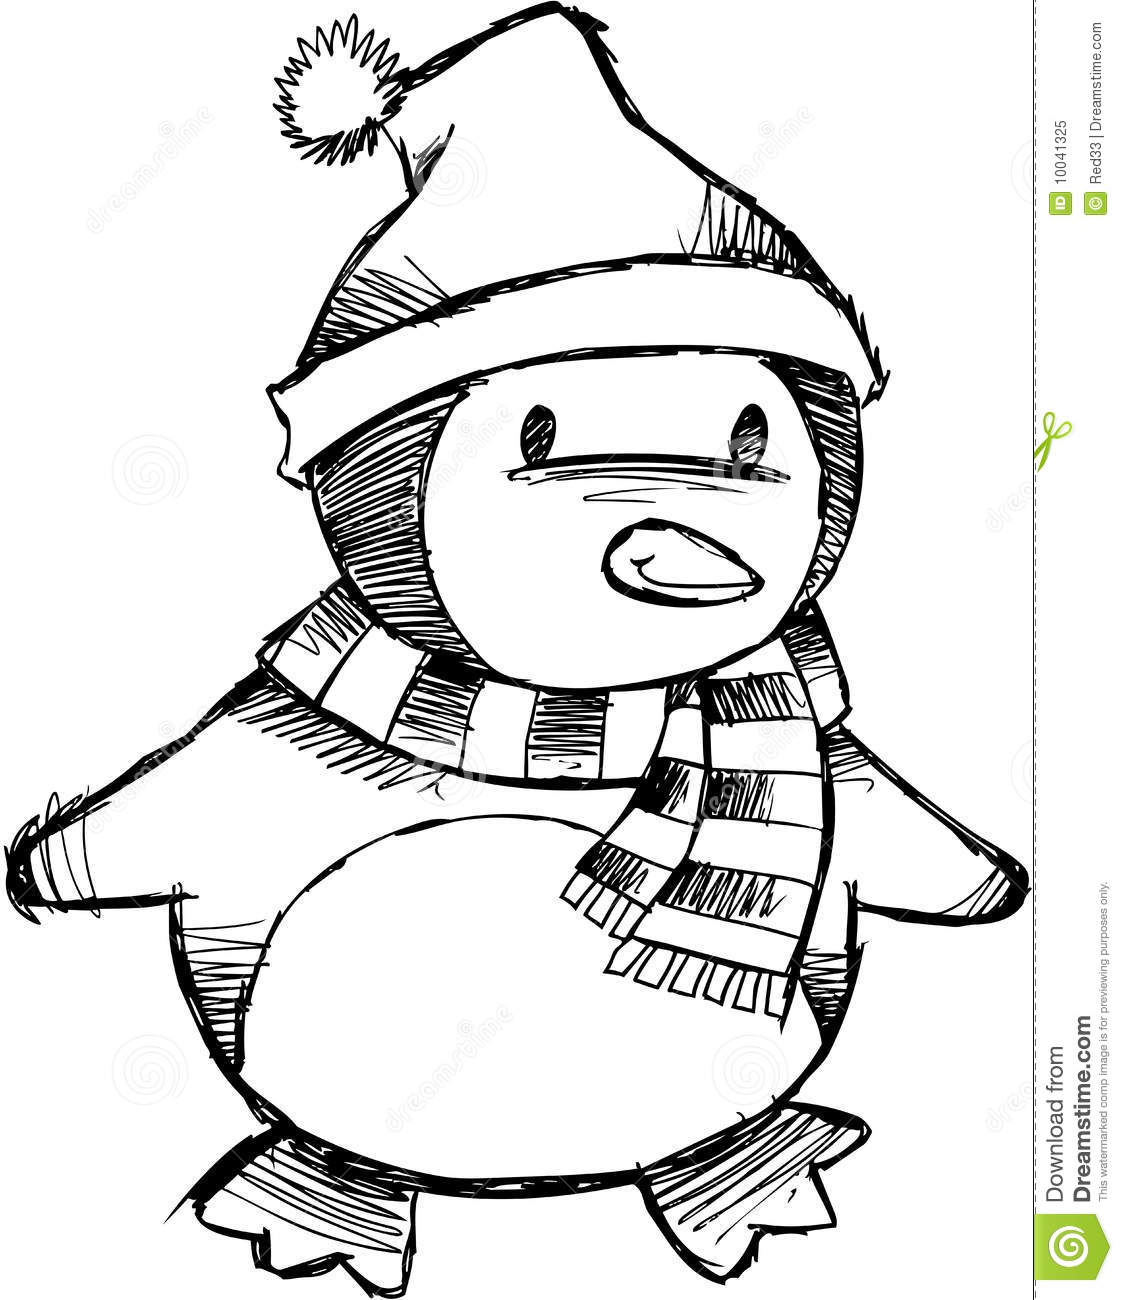 Penguin Clip Art Coloring Pages Coloring Pages